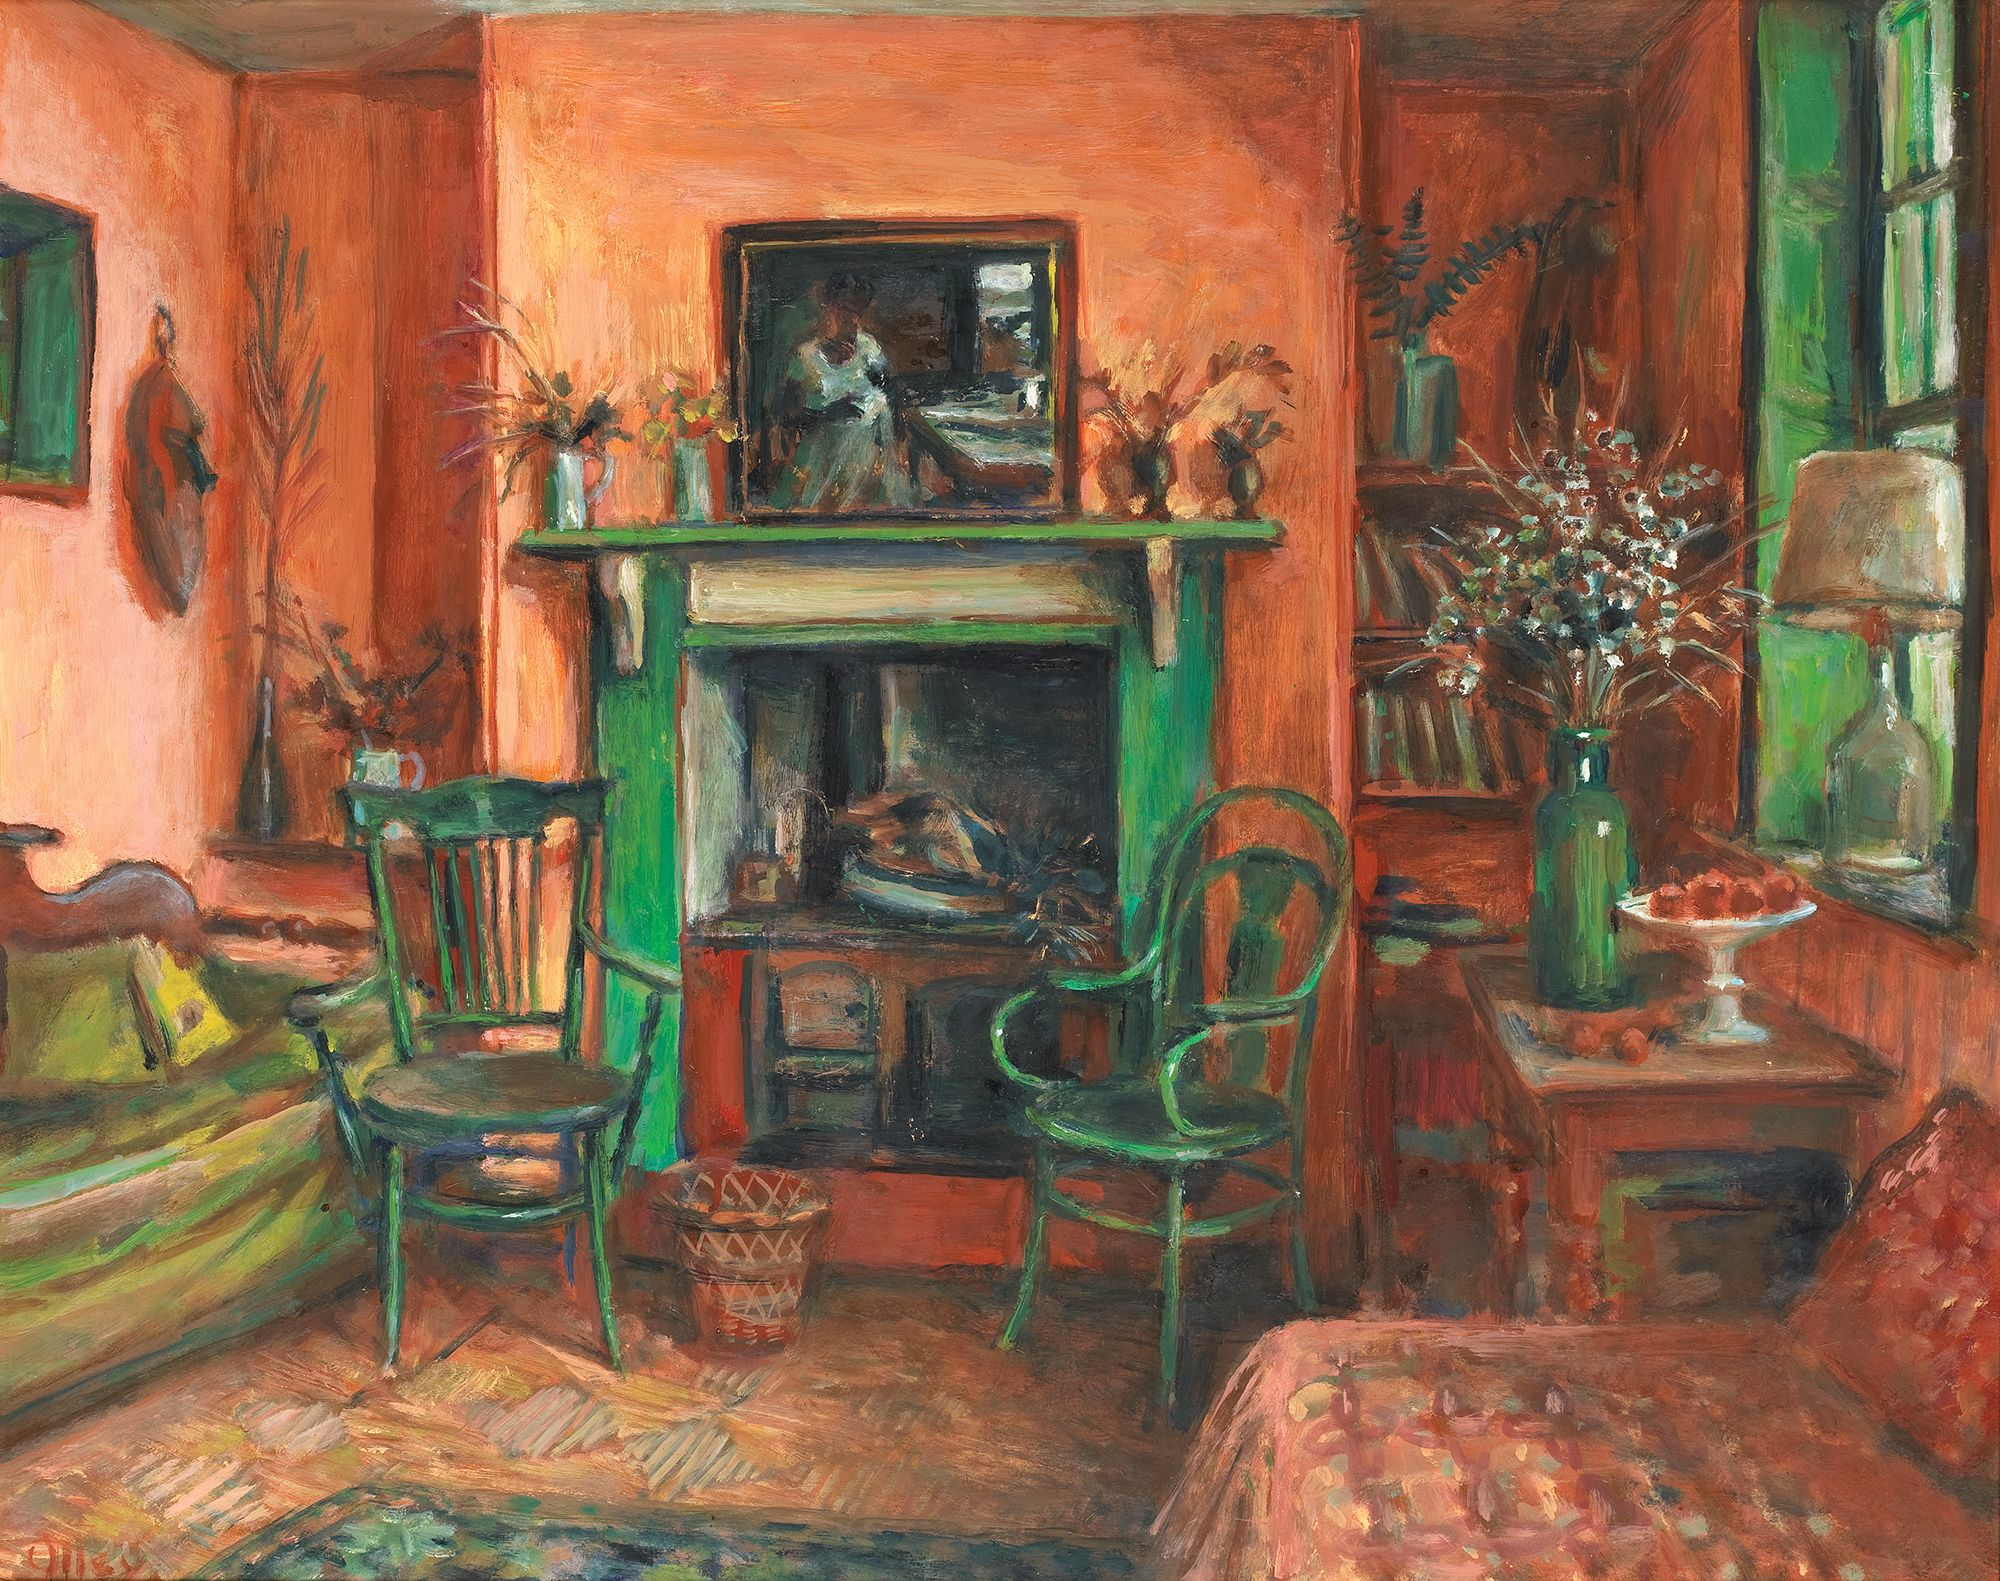 """Margaret Olley """"Interior with Green Fireplace"""", 1972 (Australia, Post-Impressionism, 20th cent.)"""